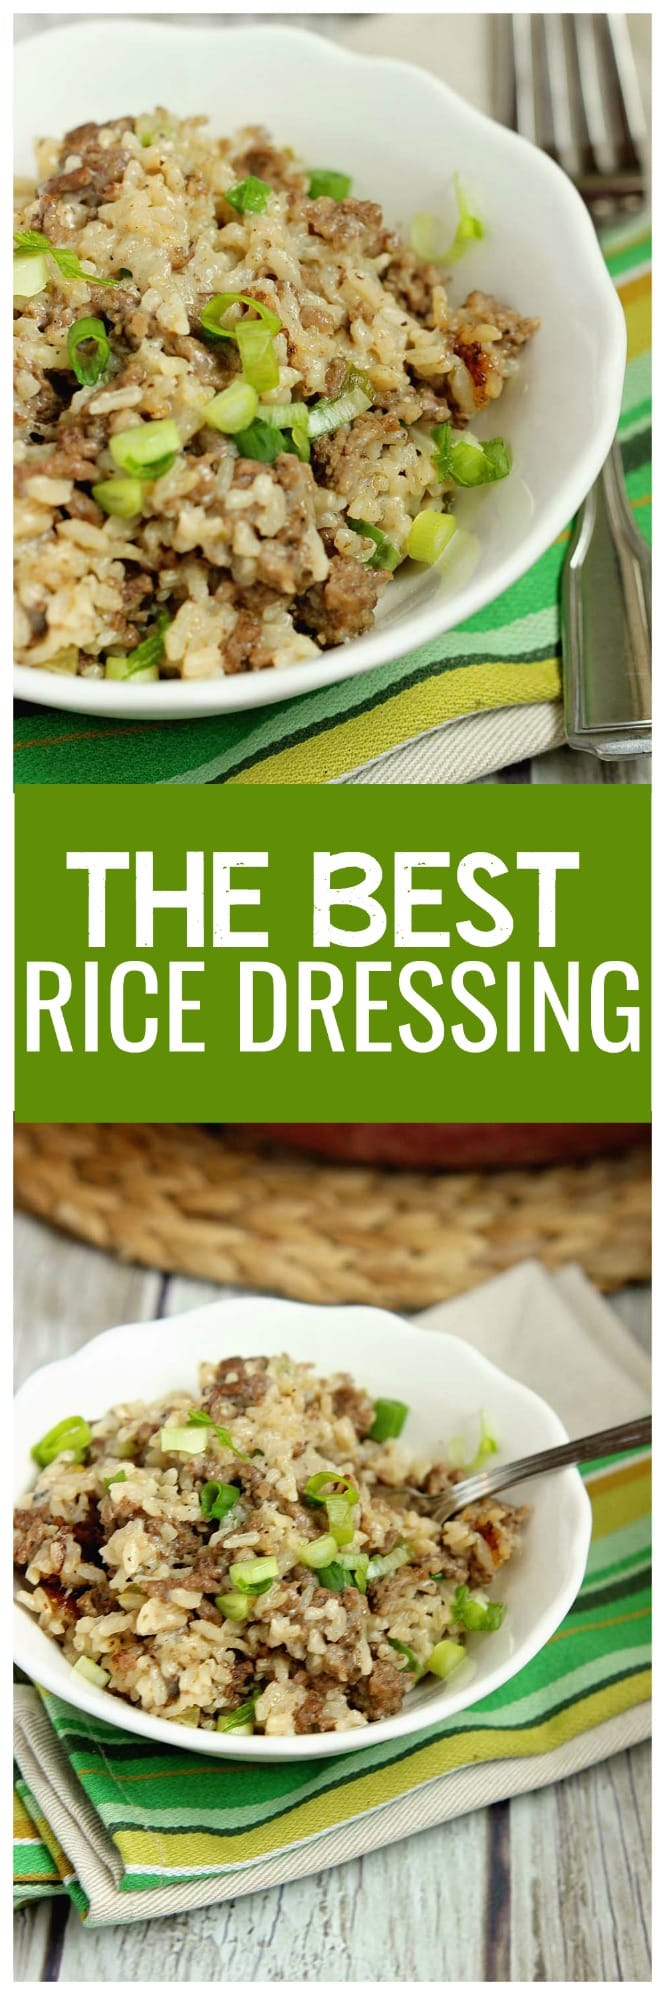 Best Rice Dressing - The perfect side dish to barbecues and baked ham, turkey, and chicken is rice dressing!  This recipe is delicious, easy, and feeds a crowd.